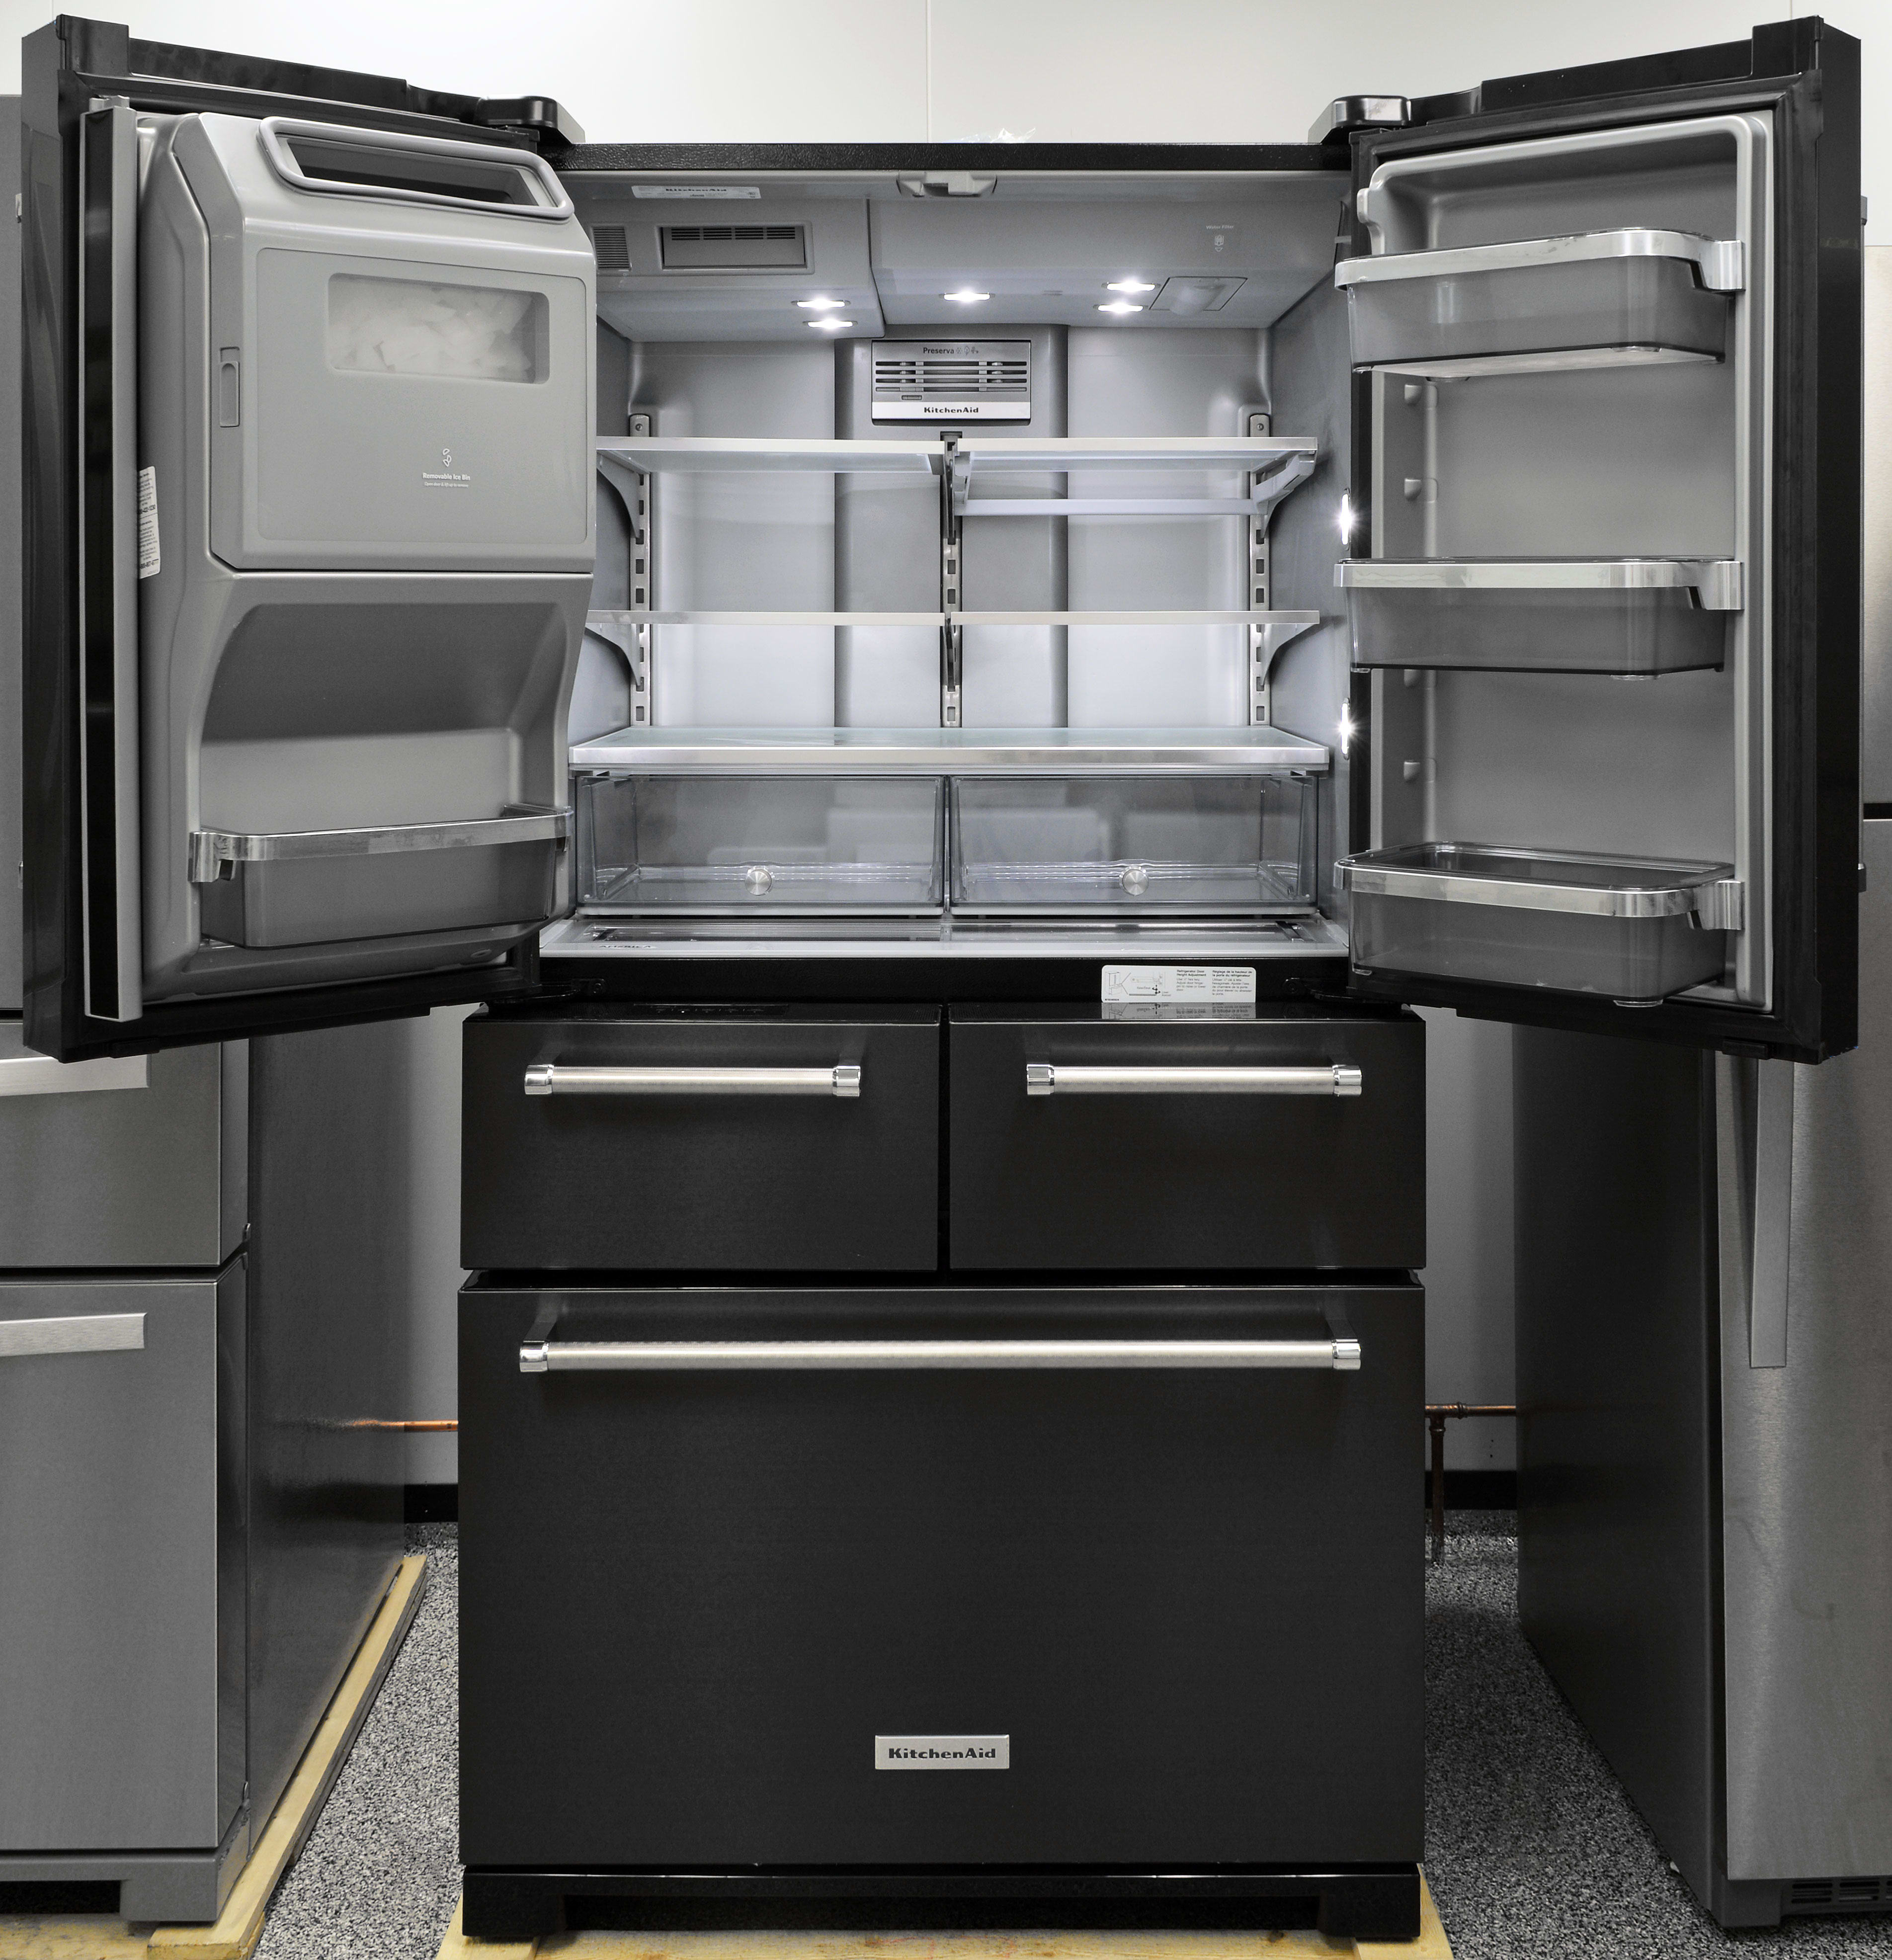 Kitchenaid Krmf706ebs French Door Refrigerator Review Reviewed